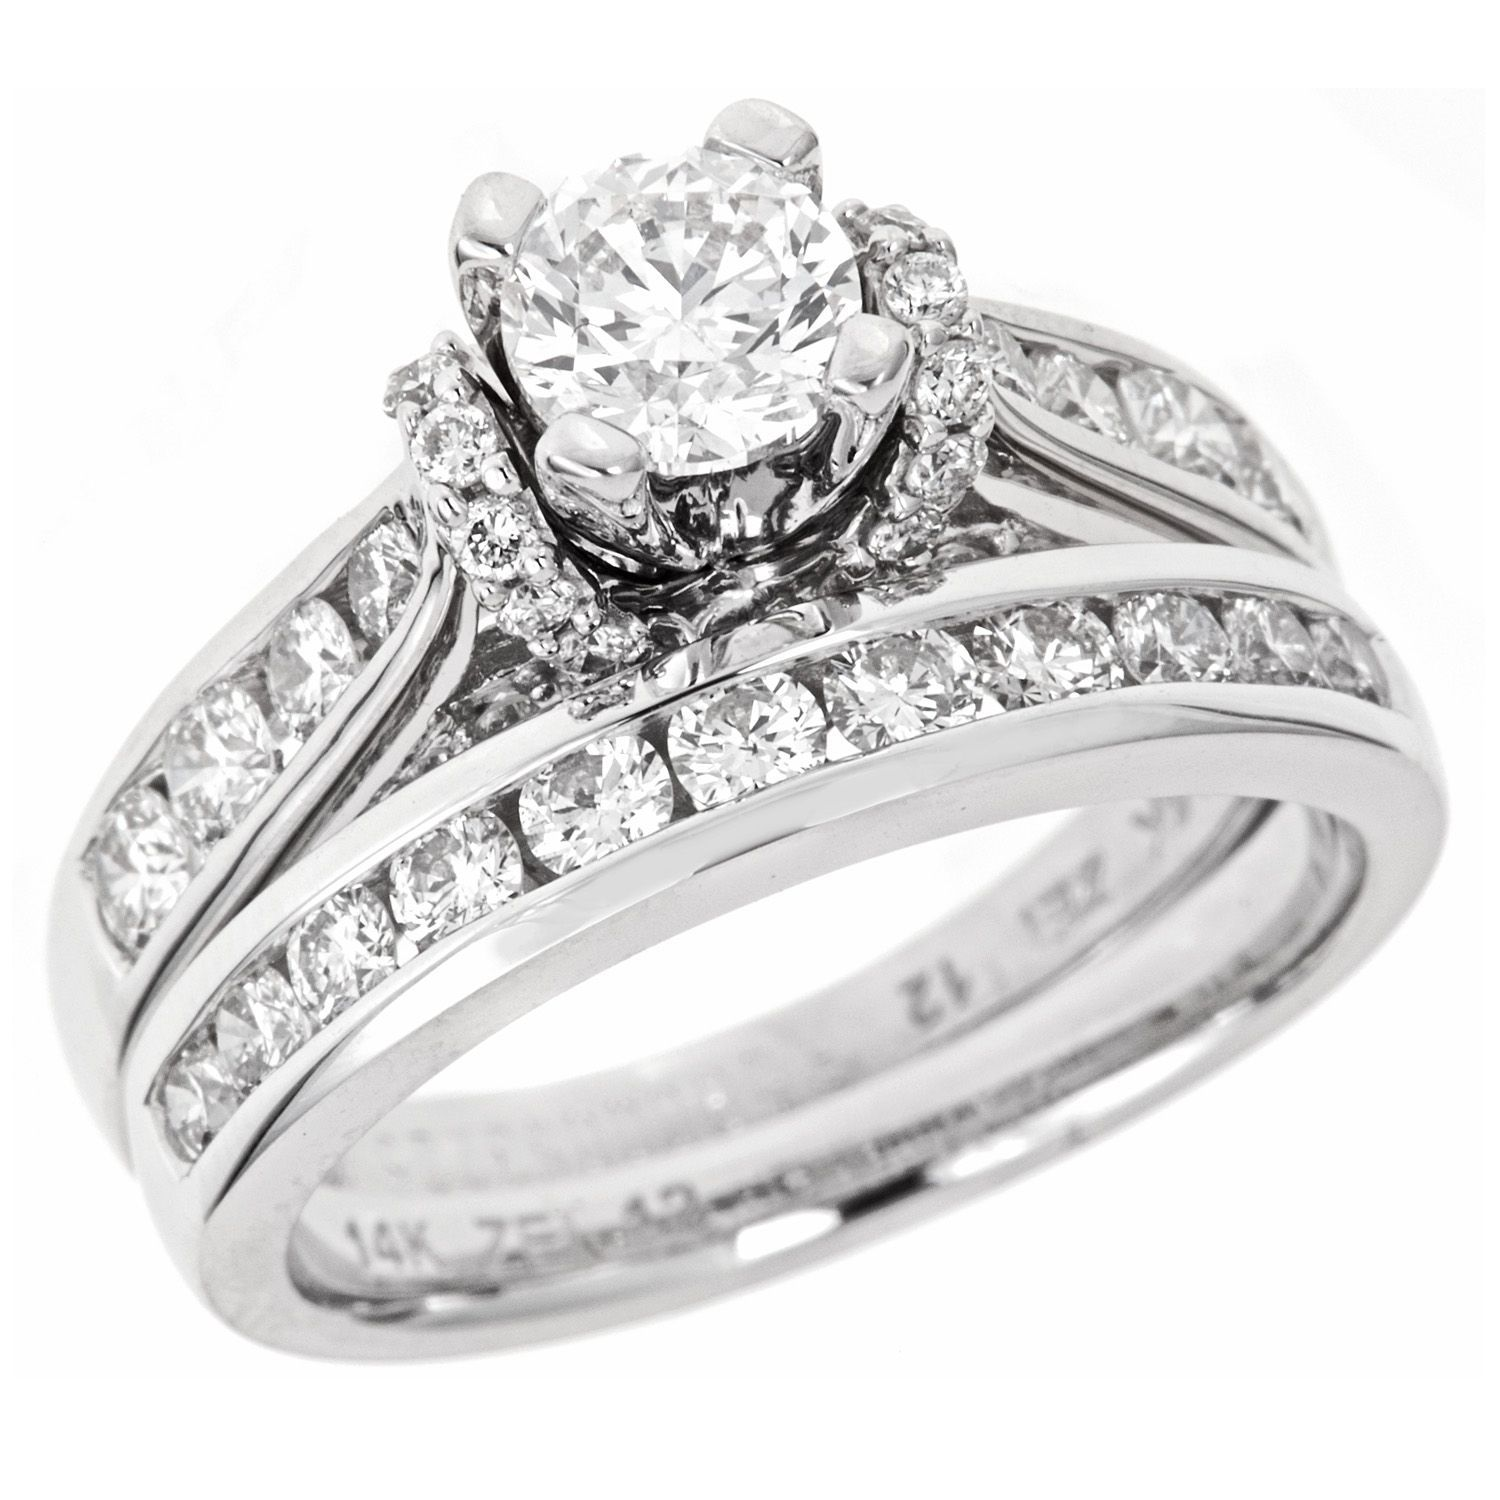 2 00 CT T W Regal Diamond Bridal Ring Set in 14K White Gold I